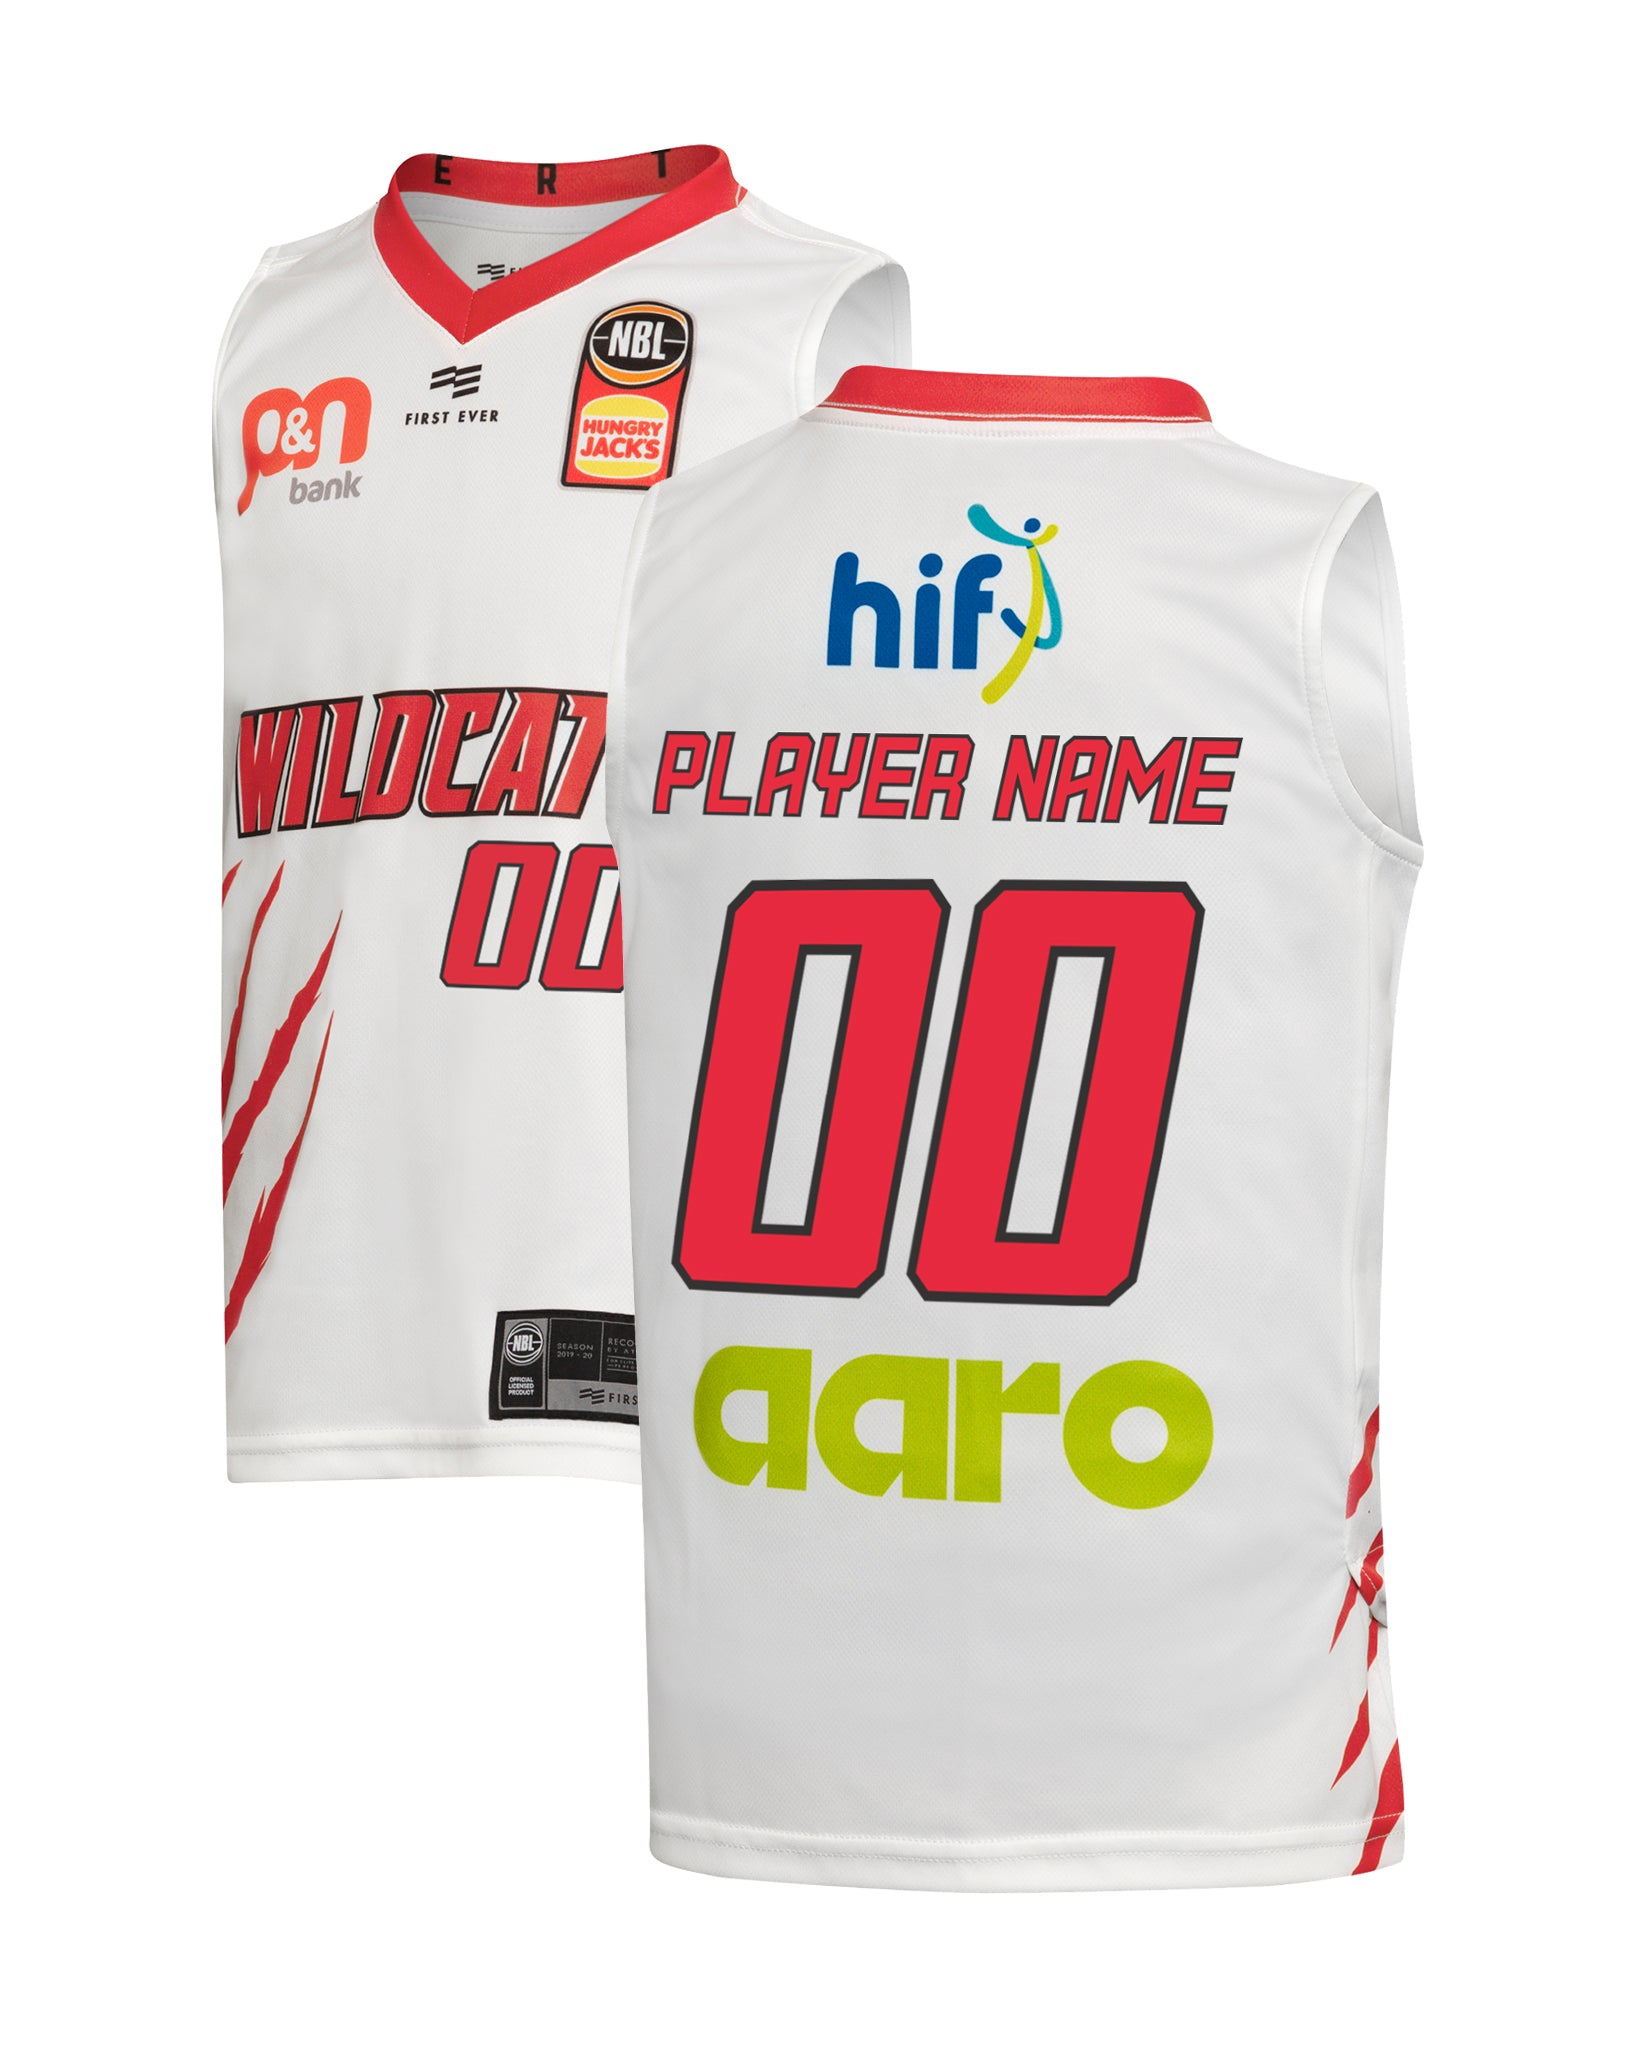 Perth Wildcats 19/20 Youth Authentic Away Jersey - Other Players